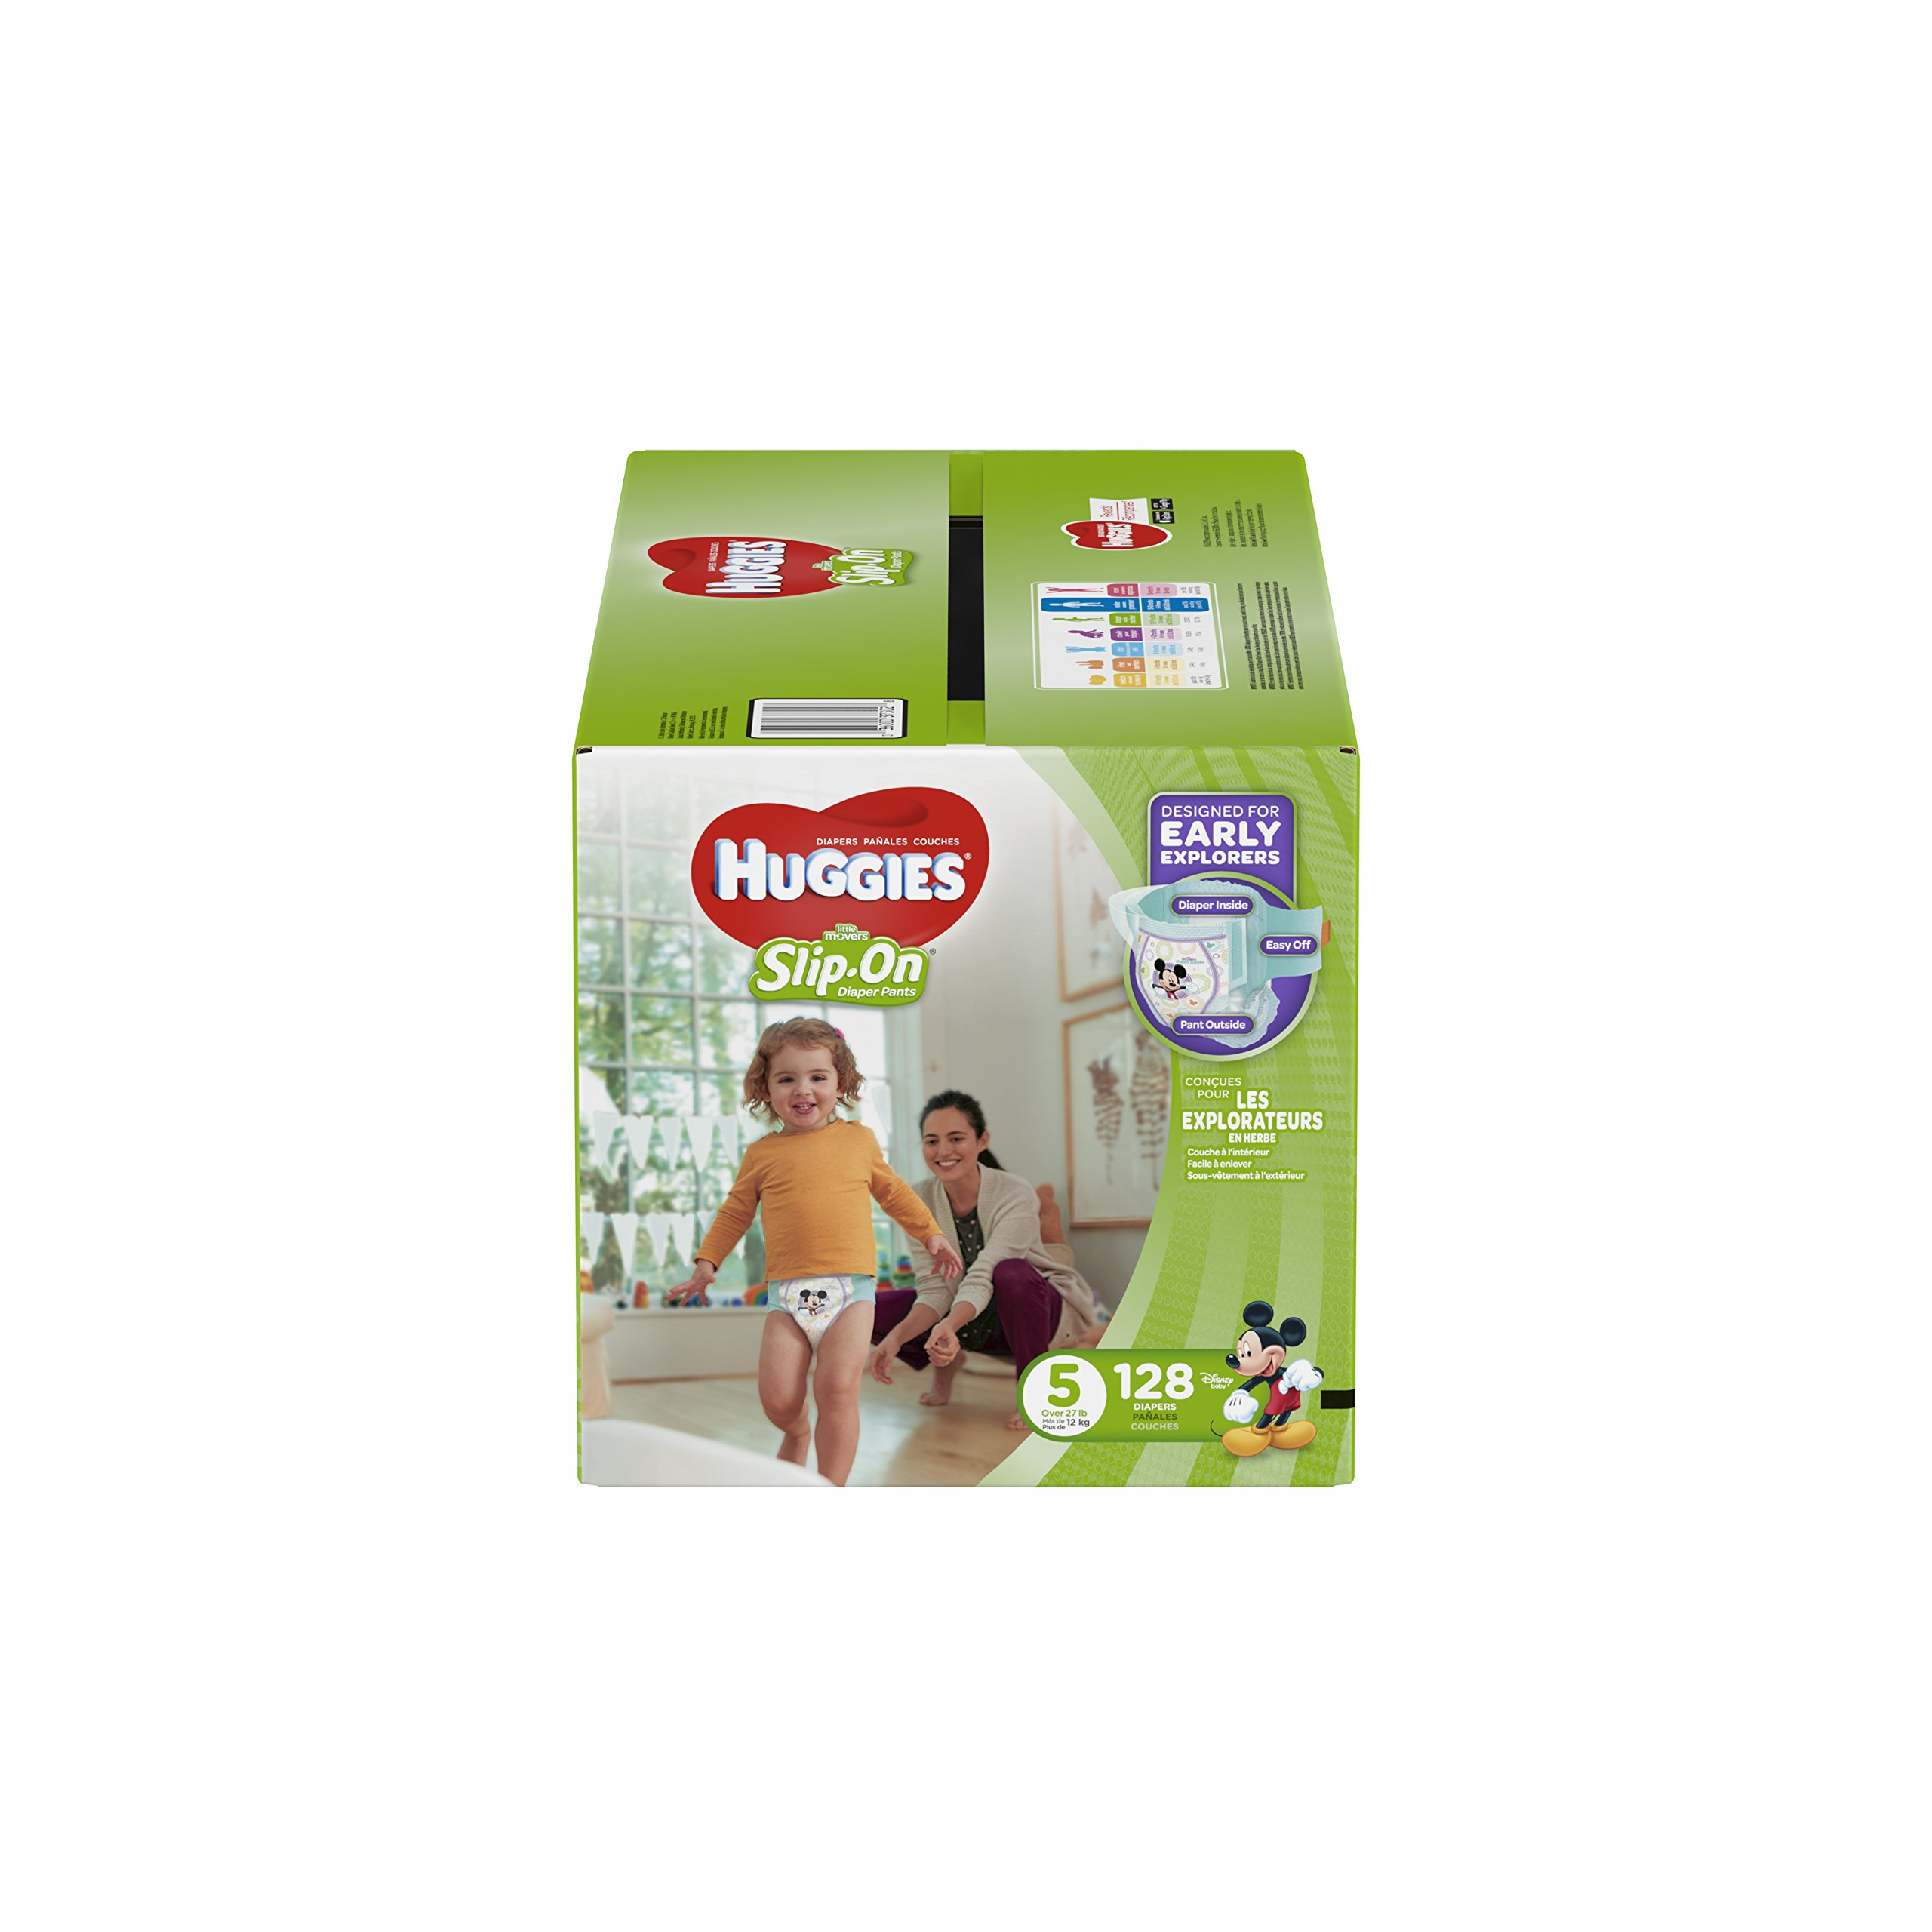 HUGGIES Little Movers Slip On Diaper Pants with Easy Pull On Style and Removal Tabs,